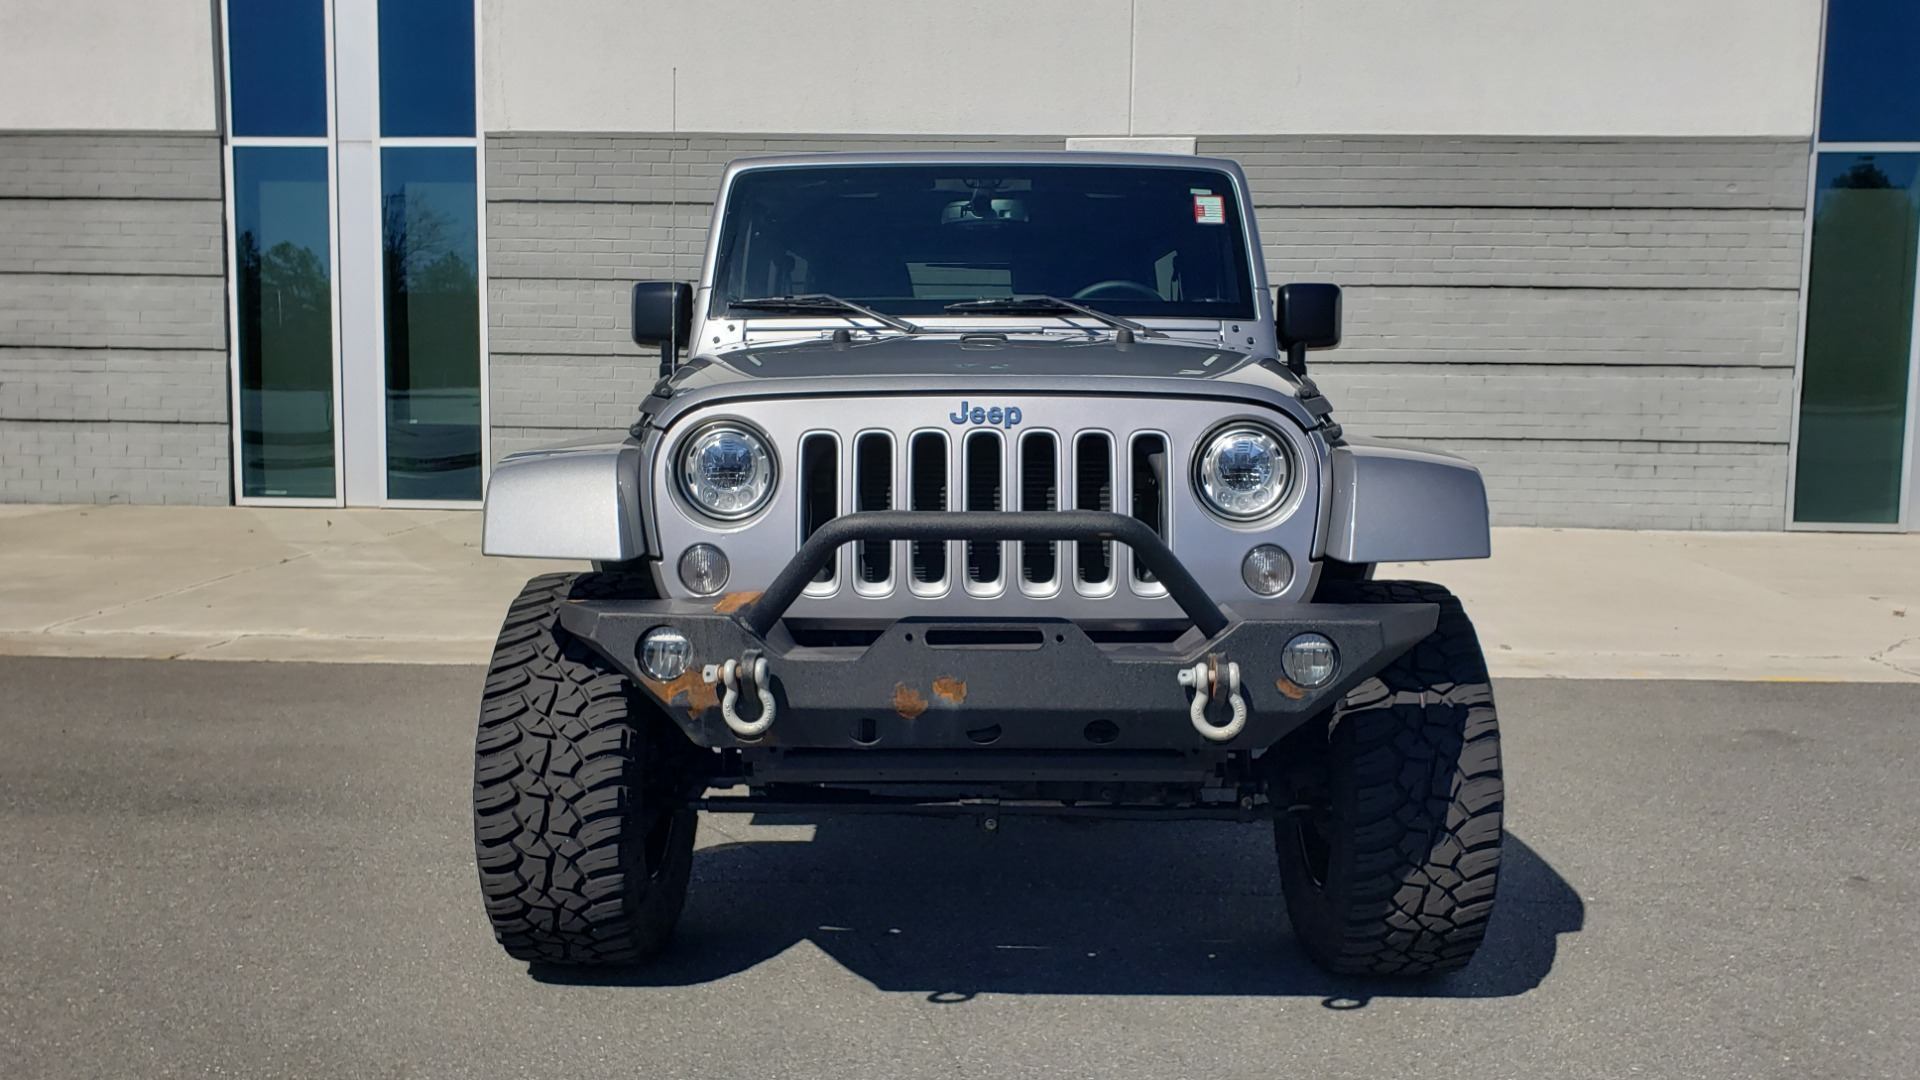 Used 2017 Jeep WRANGLER UNLIMITED SAHARA 4X4 / 3-PC FREEDOM TOP / 3.6L V6 / 5-SPD AUTO for sale Sold at Formula Imports in Charlotte NC 28227 27